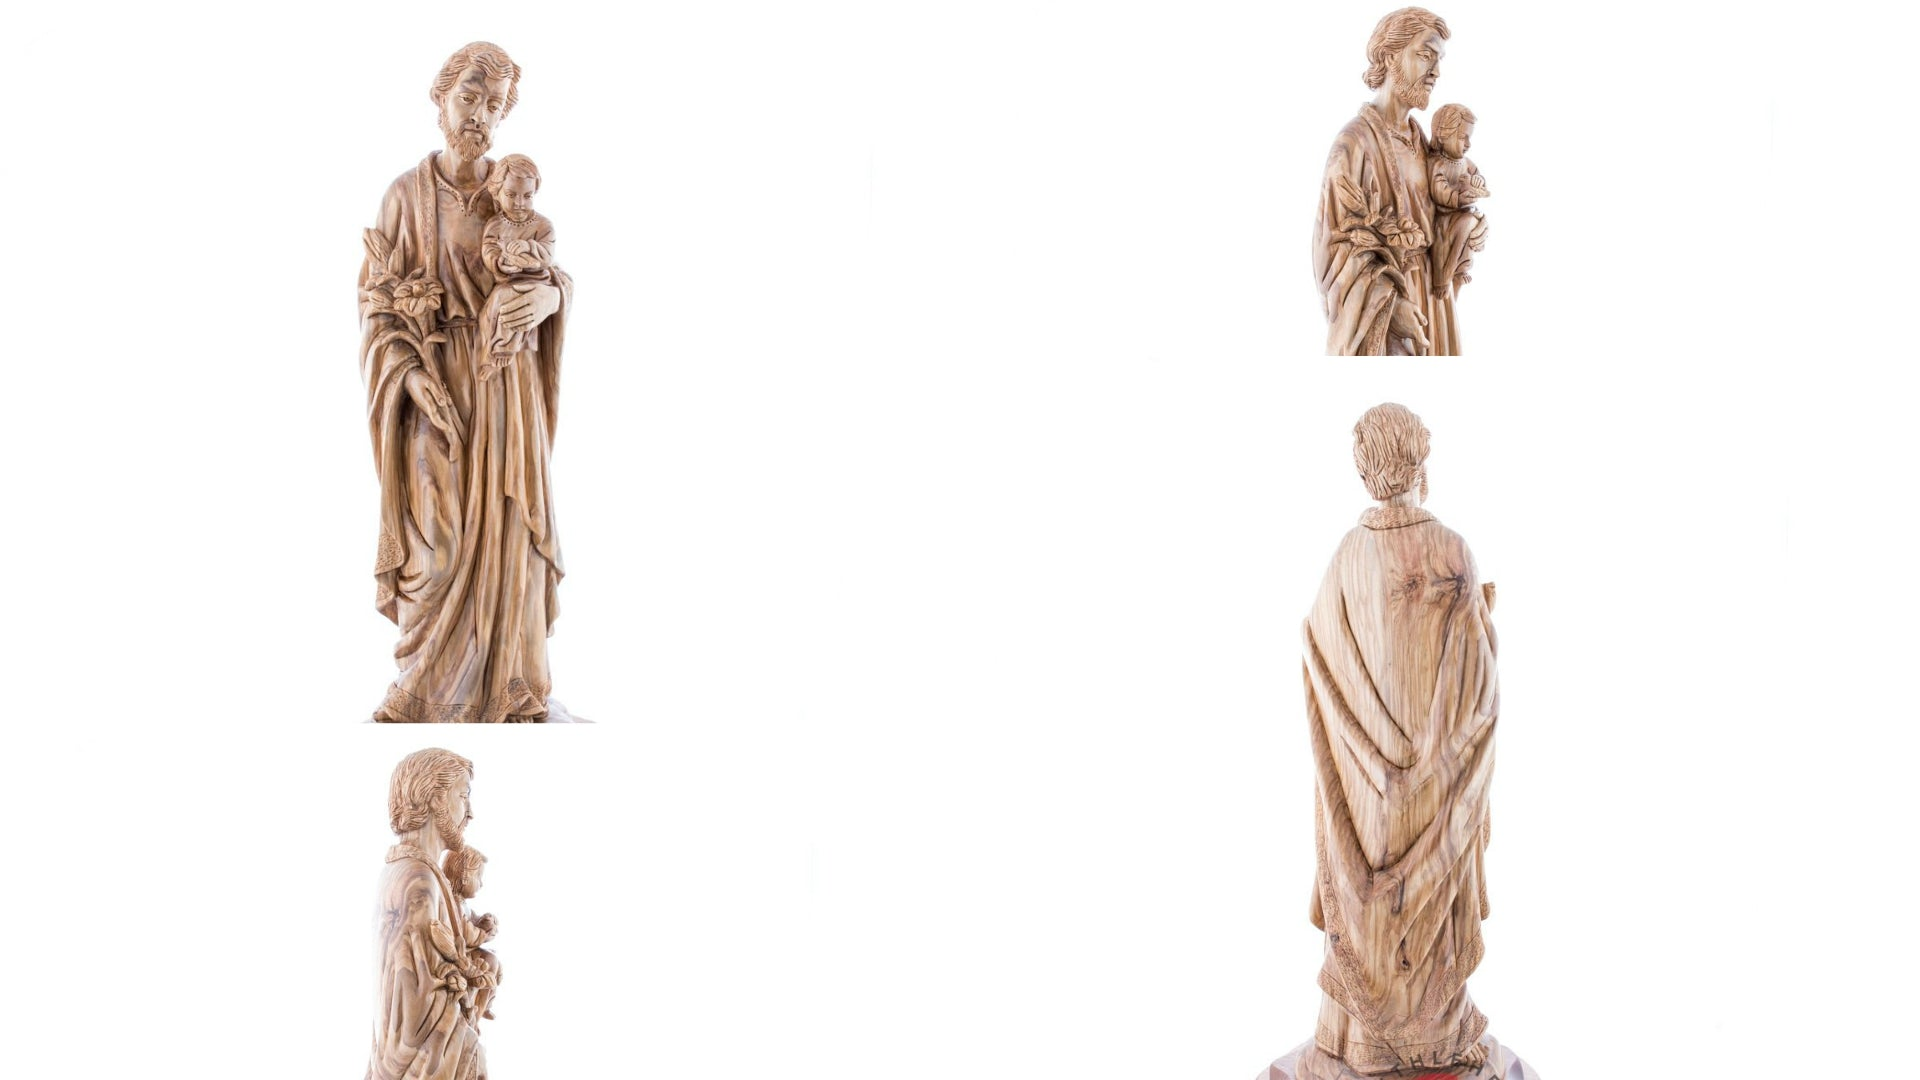 Olive Wood Statue of Saint Joseph Holding Baby Jesus with A Lily